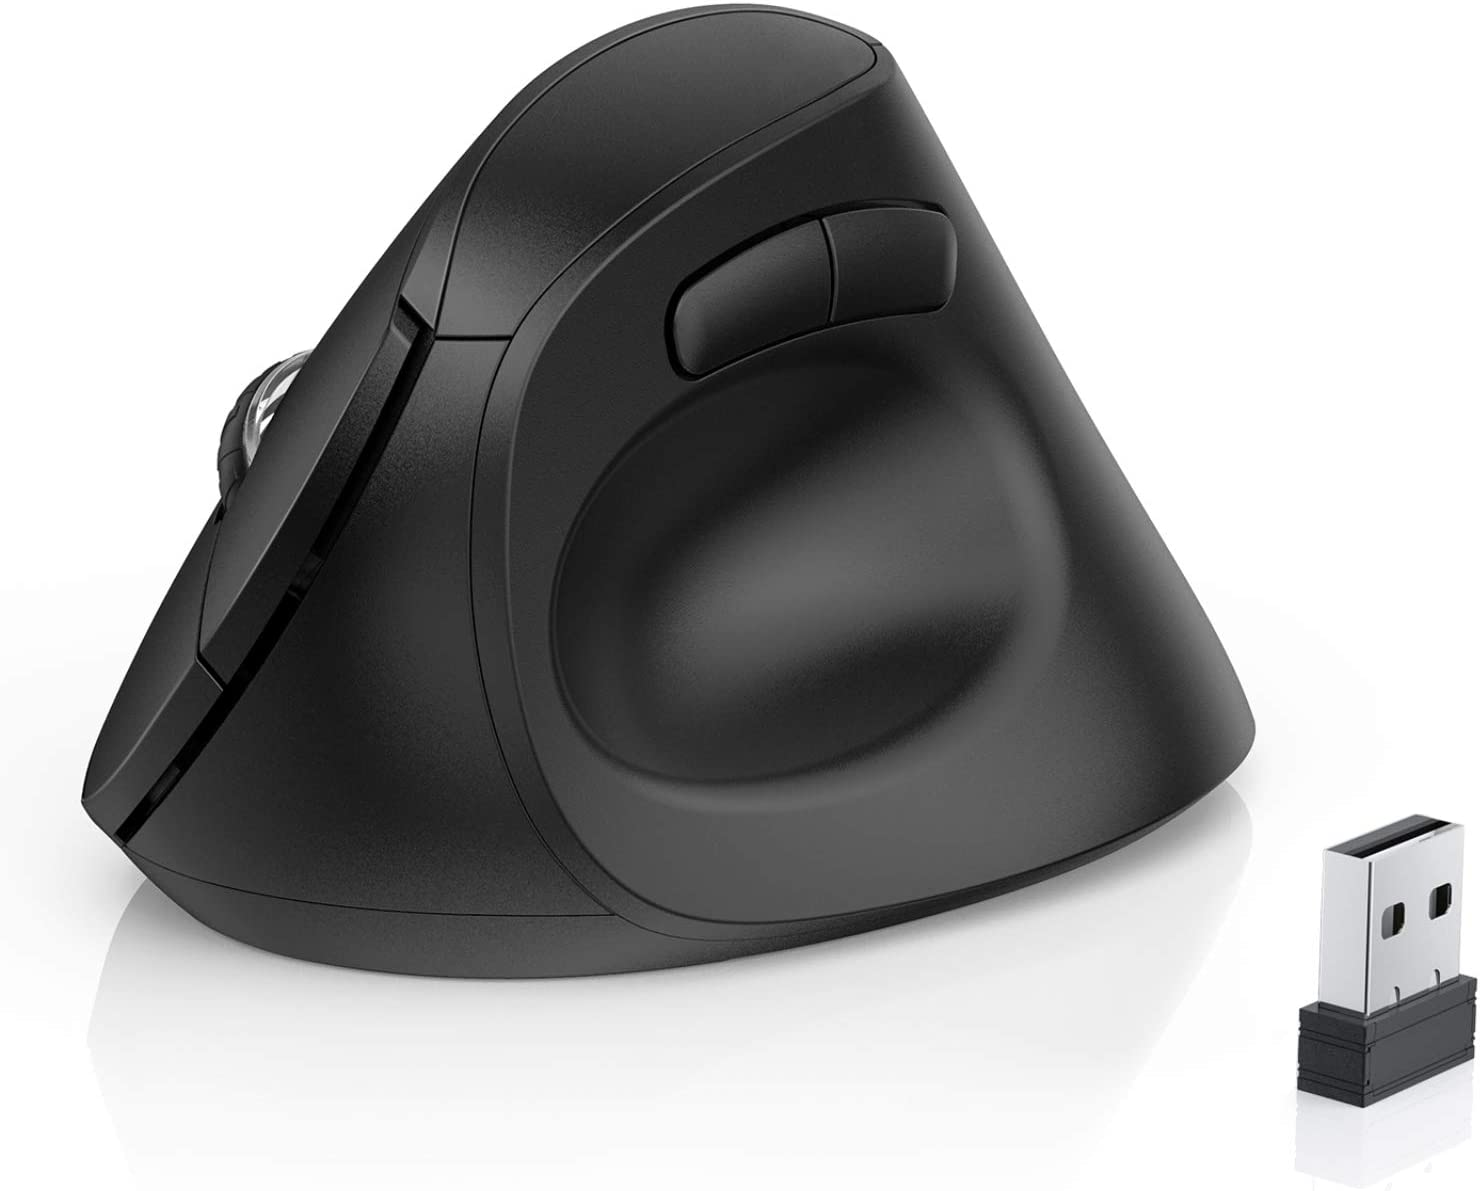 OMOTON Ergonomic Mouse, 2.4G Wireless Bluetooth Vertical Mouse with Adjustable DPI 800/ 1600/ 2400 and 6 Buttons for Laptop, Desktop, PC, MacBook and More, Black